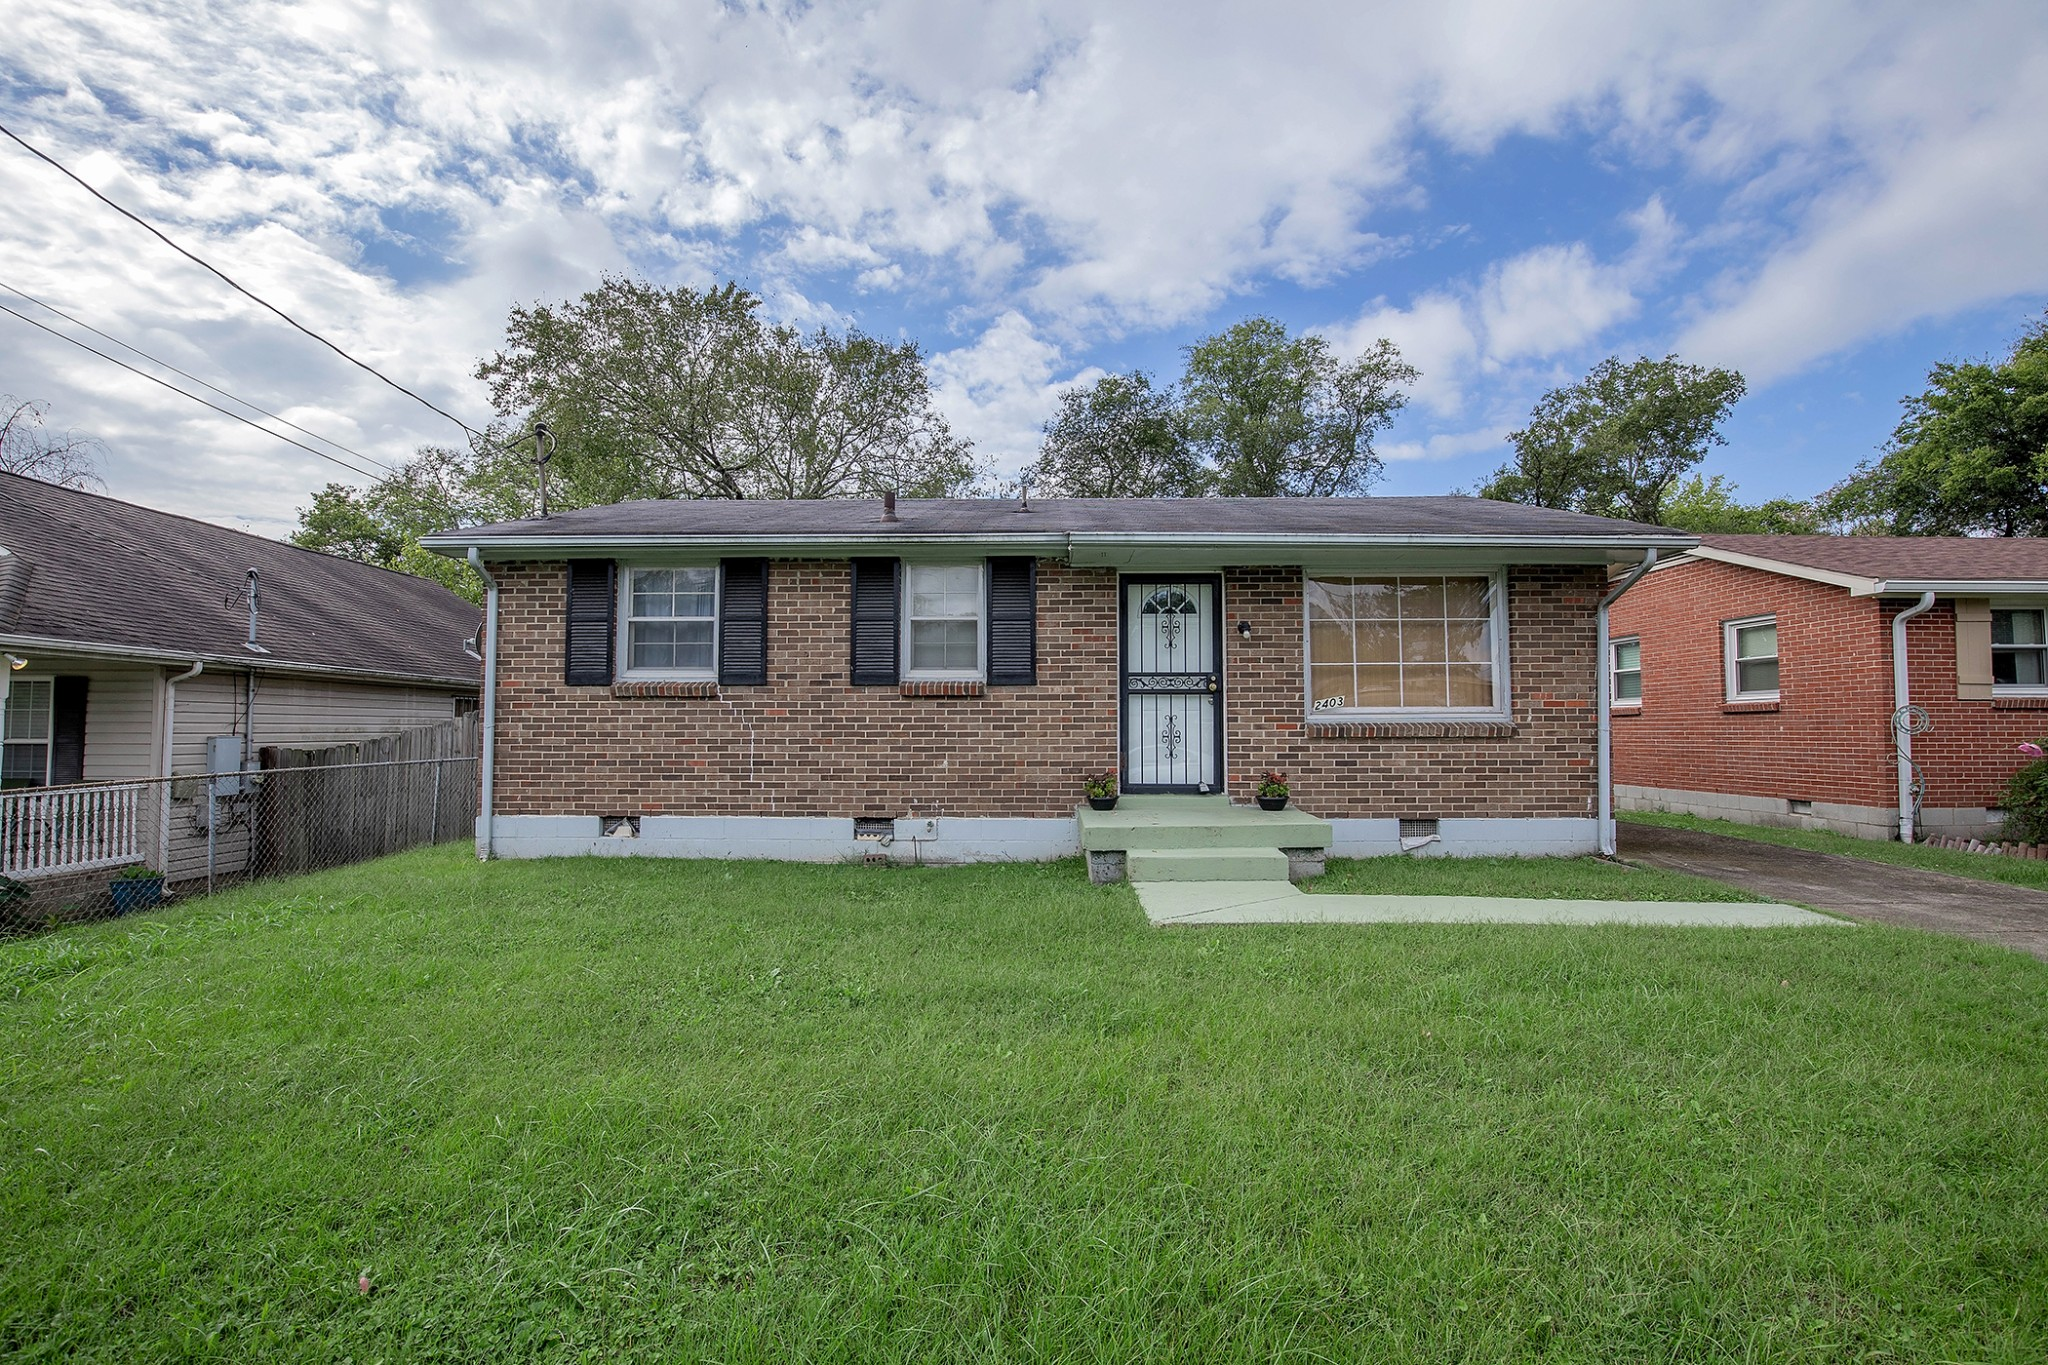 Charming home in North Nashville. Spacious fenced in backyard.  Minutes from the interstate, Germantown, and Downtown Nashville.  Home is in need of cosmetic updates.  Offers due Tuesday at 4:00 pm.